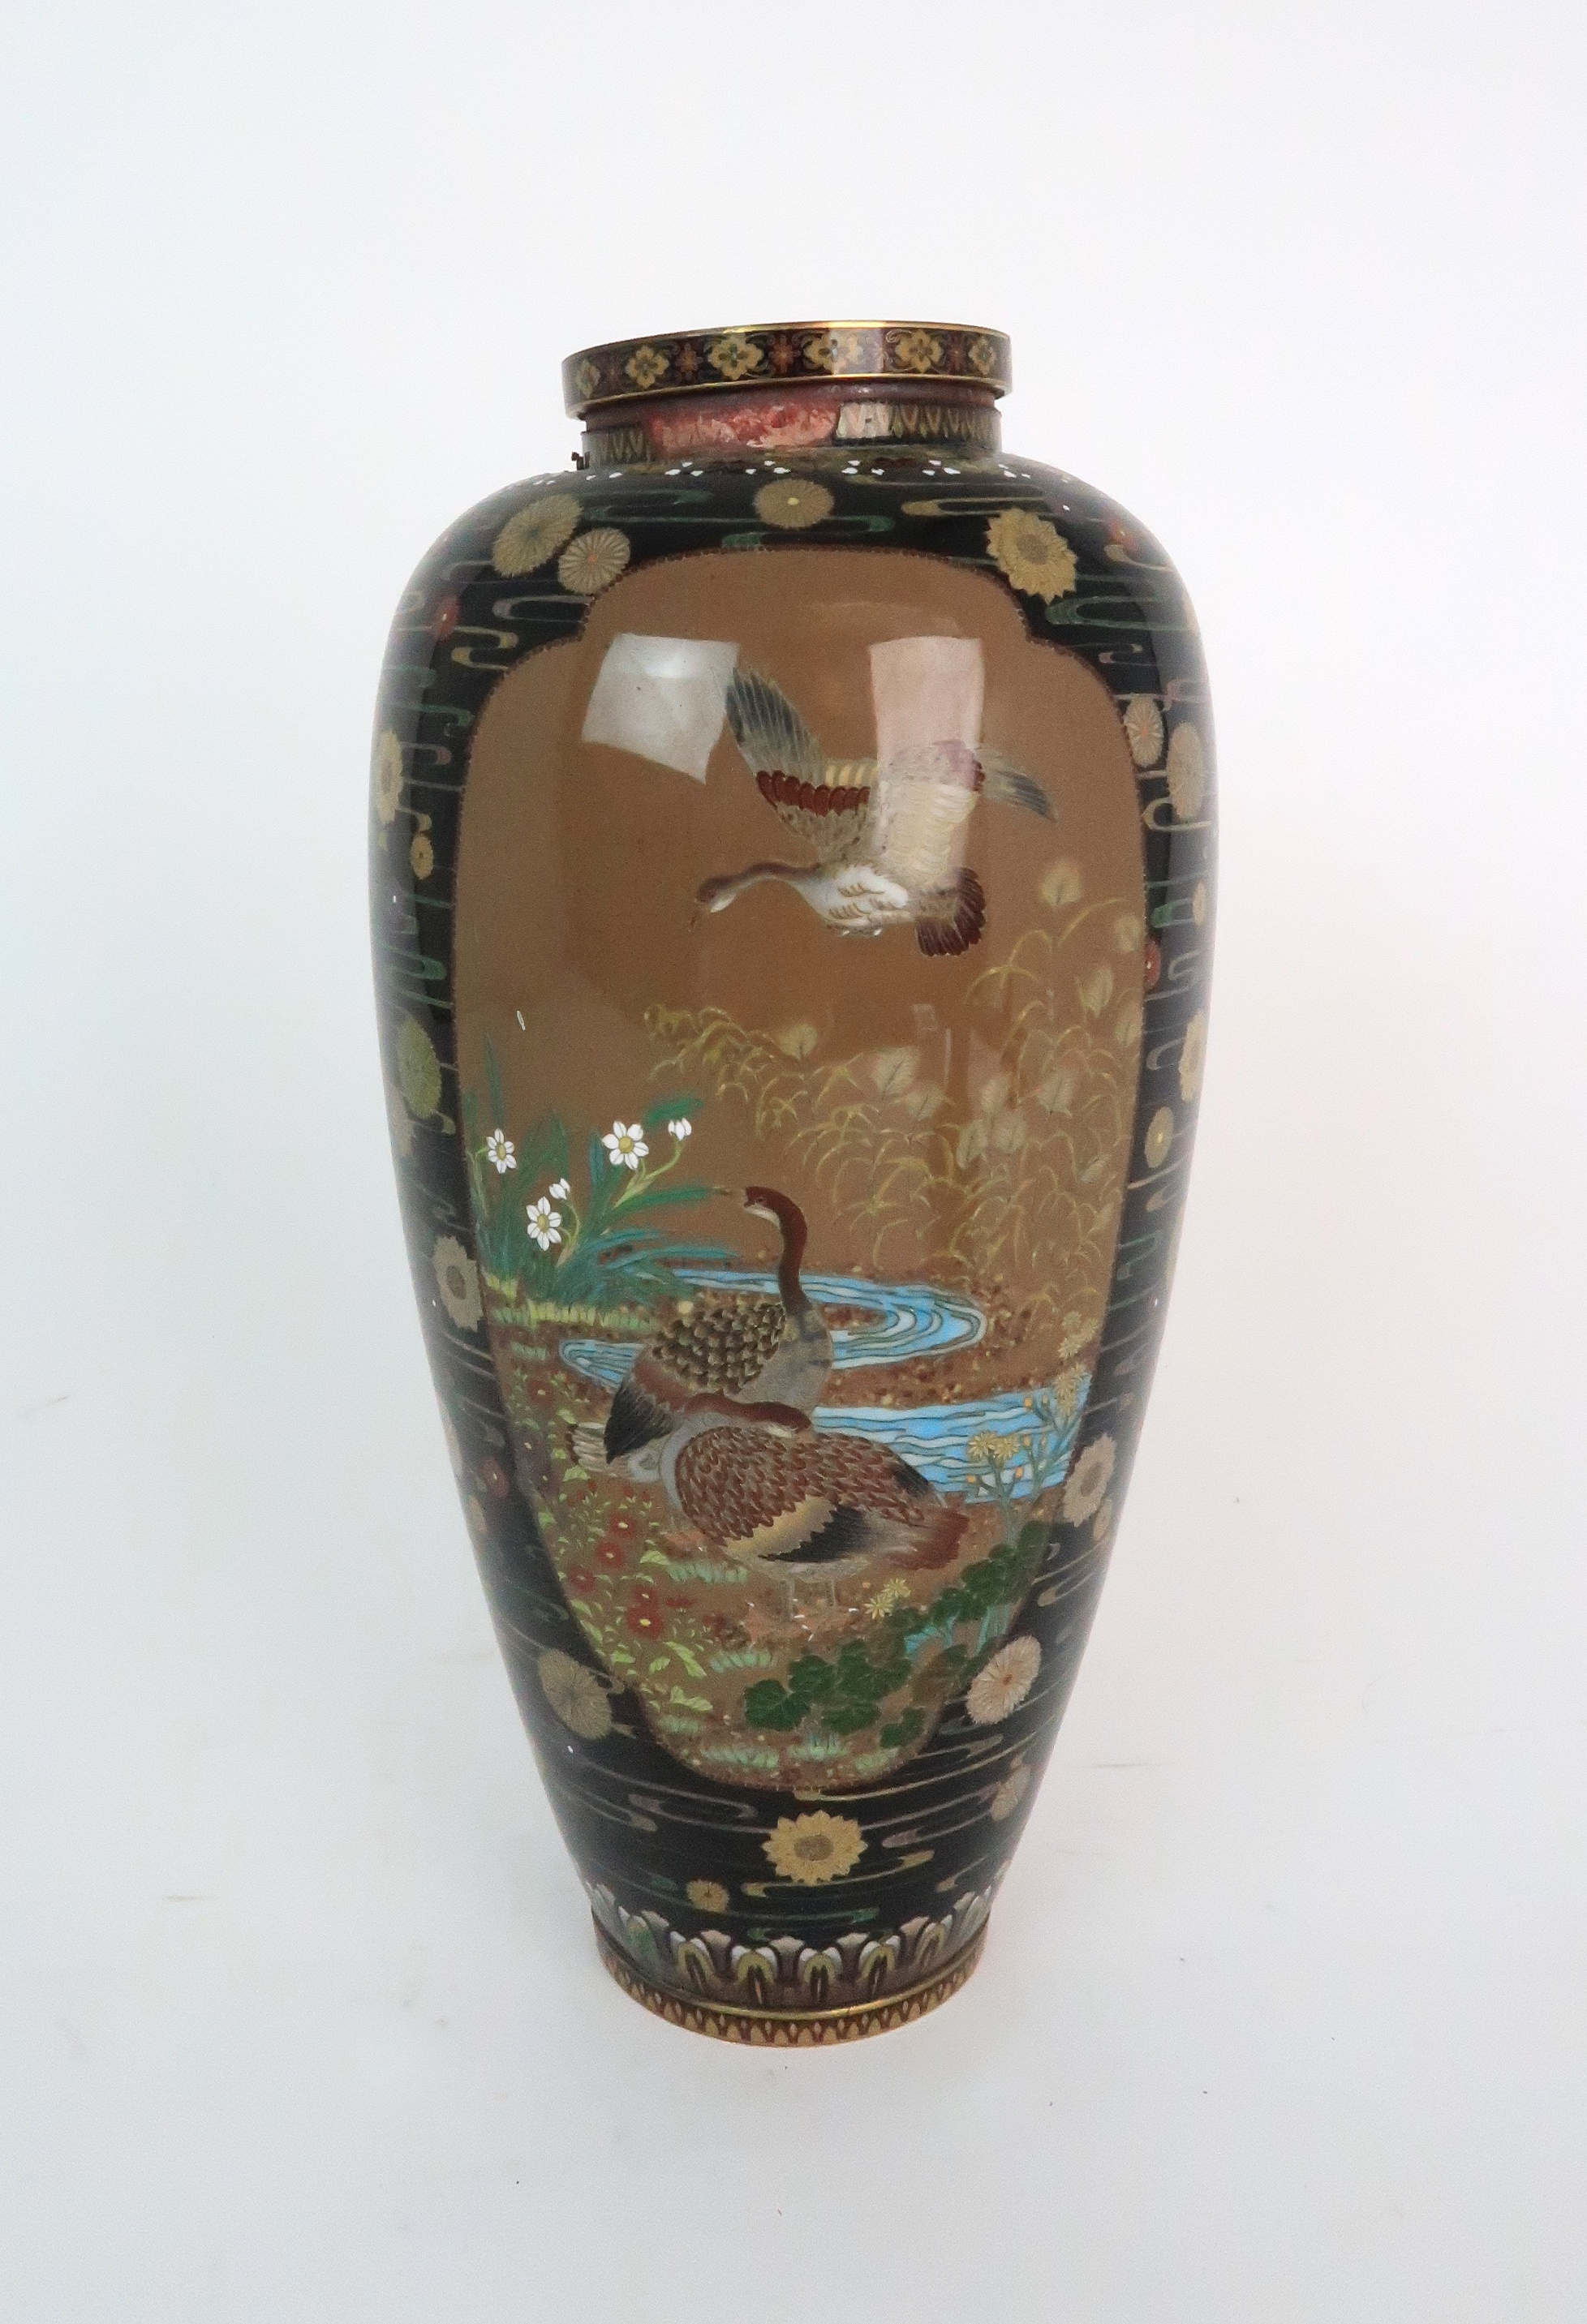 A JAPANESE CLOISONNE BALUSTER VASE finely decorated with panels of birds, butterflies, plants and - Image 5 of 15